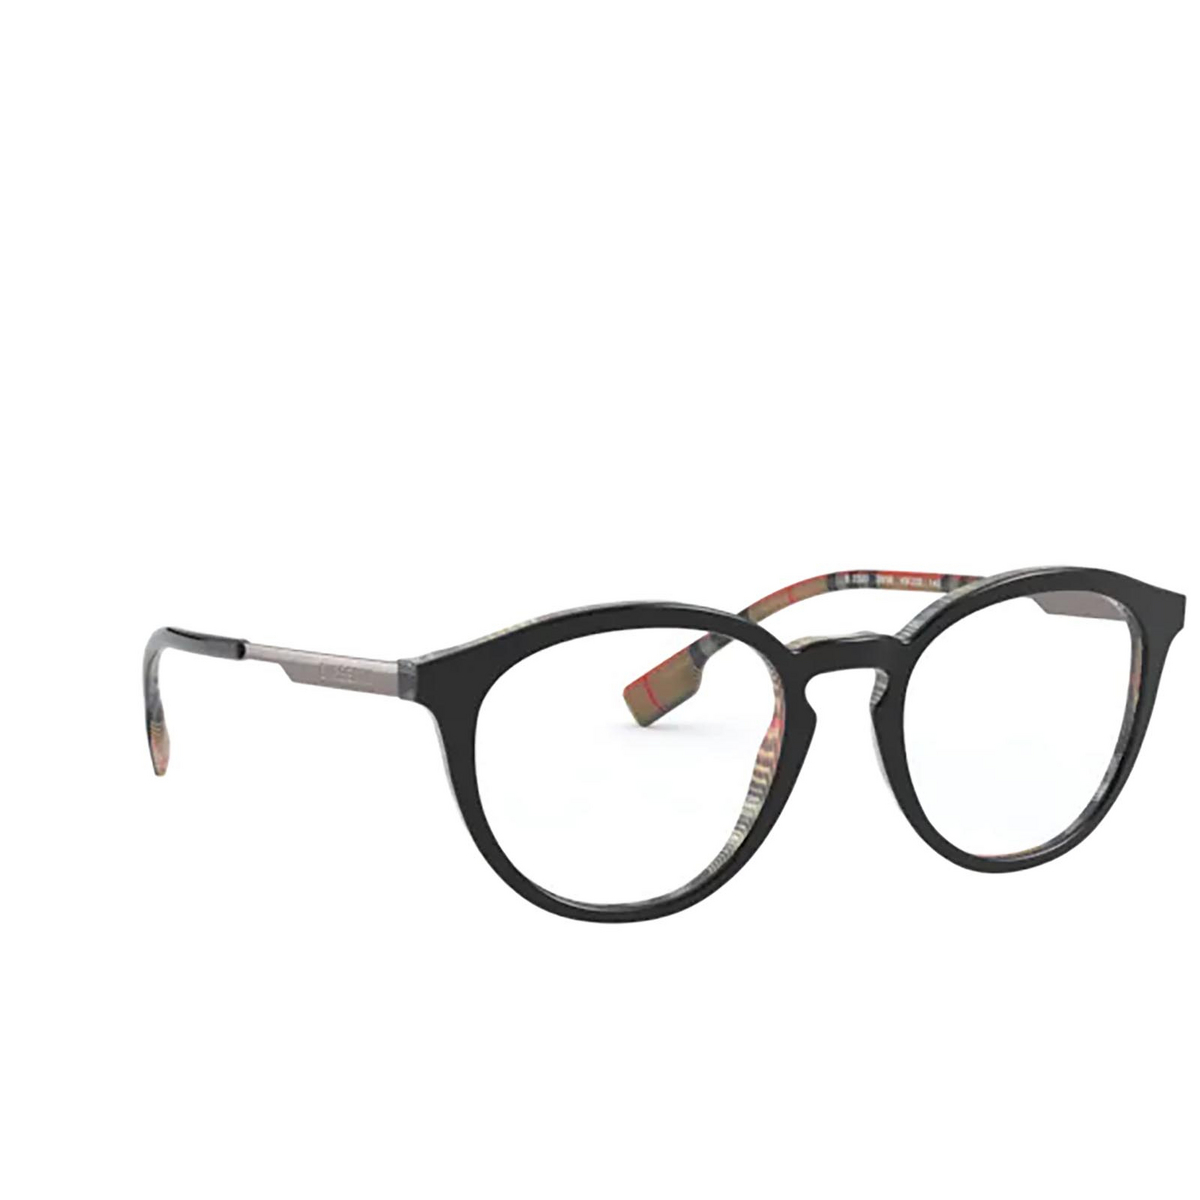 Burberry® Round Eyeglasses: Keats BE2321 color Top Black On Vintage Check 3838 - three-quarters view.